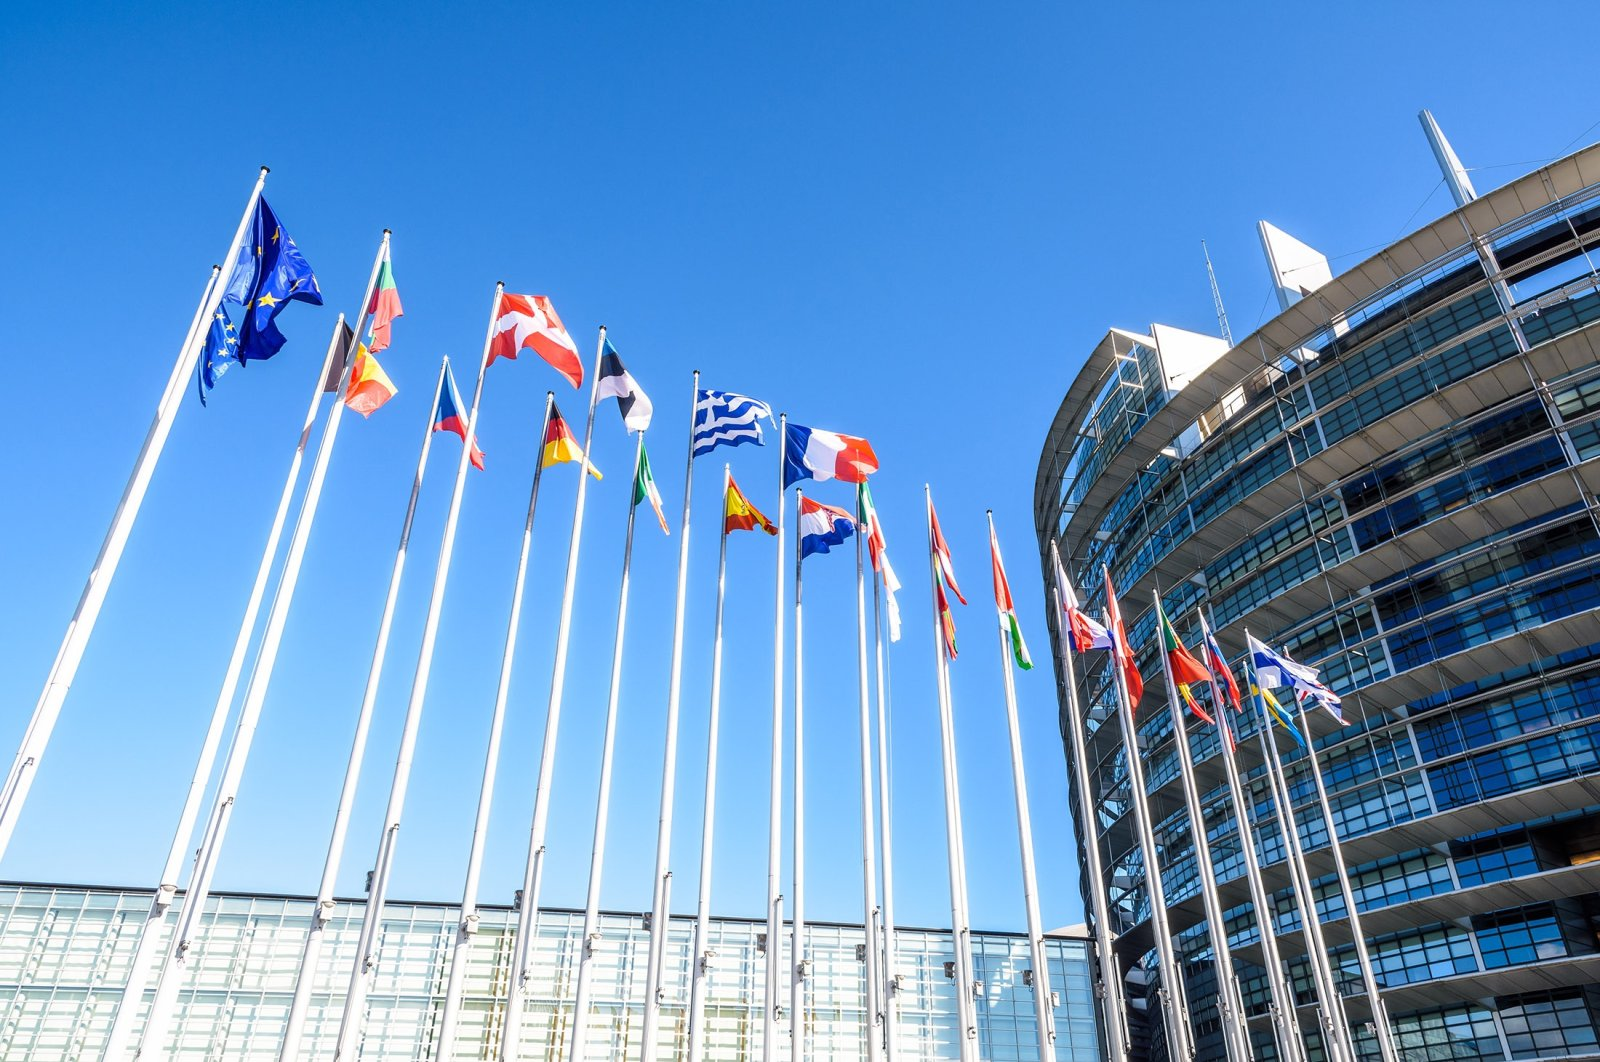 Flags of the member states of the European Union fly in front of the entrance of the Louise Weiss building, the official seat of the European Parliament in Strasbourg, France, Sept. 13, 2019. (Shutterstock Photo)